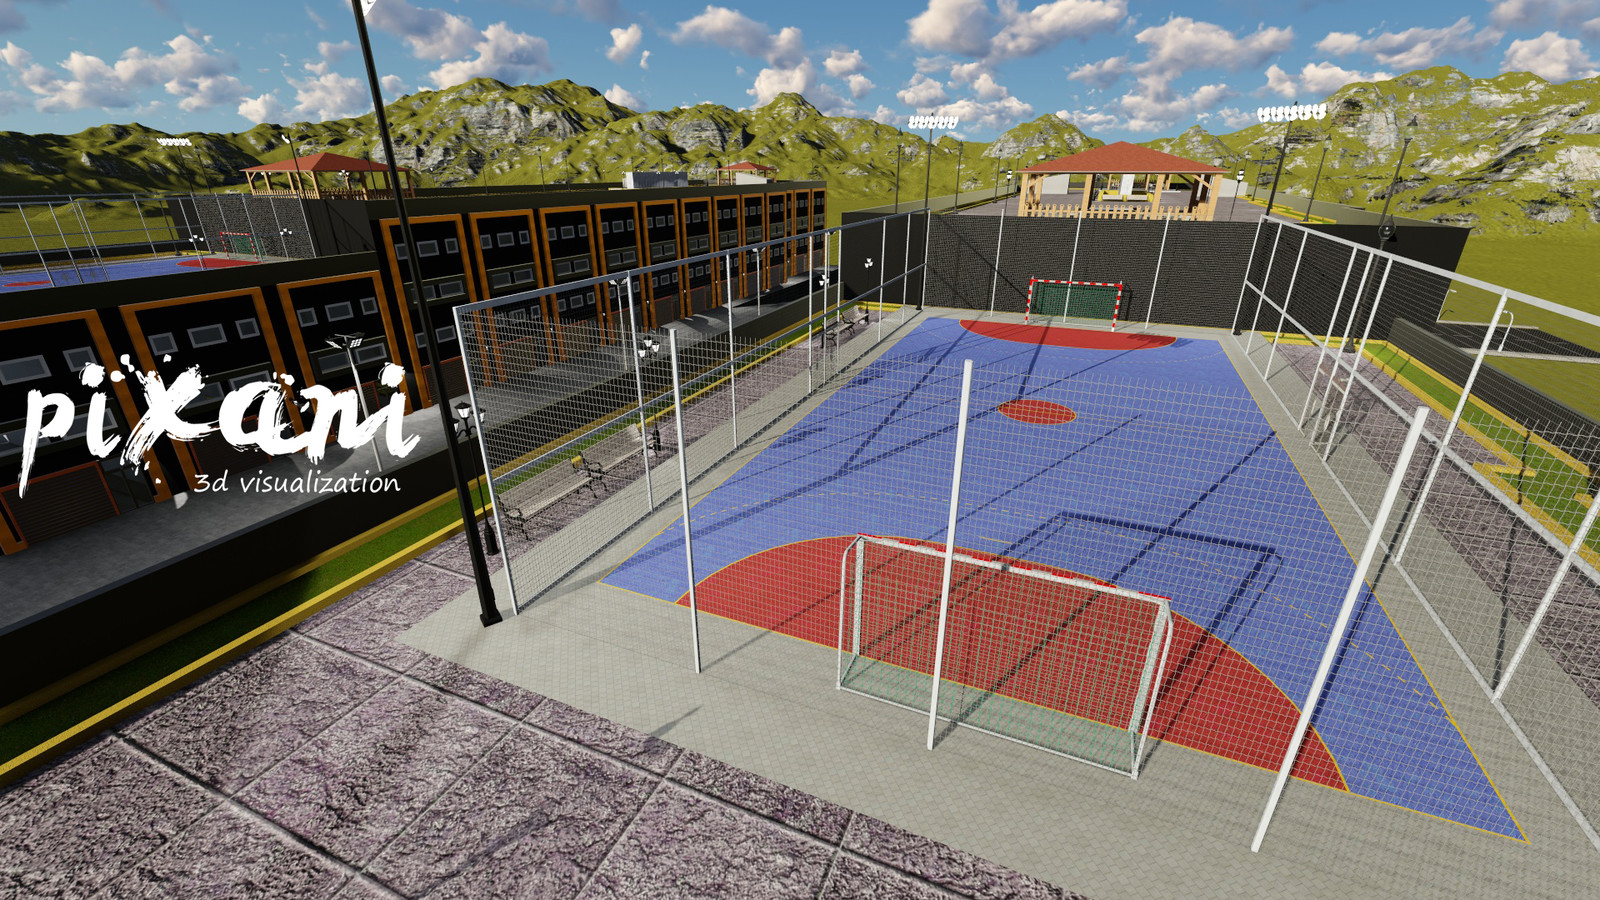 ModSan Industry Area Roof Top Basketball Court & Cafe  #3Dmodeling #tuzla #istanbul